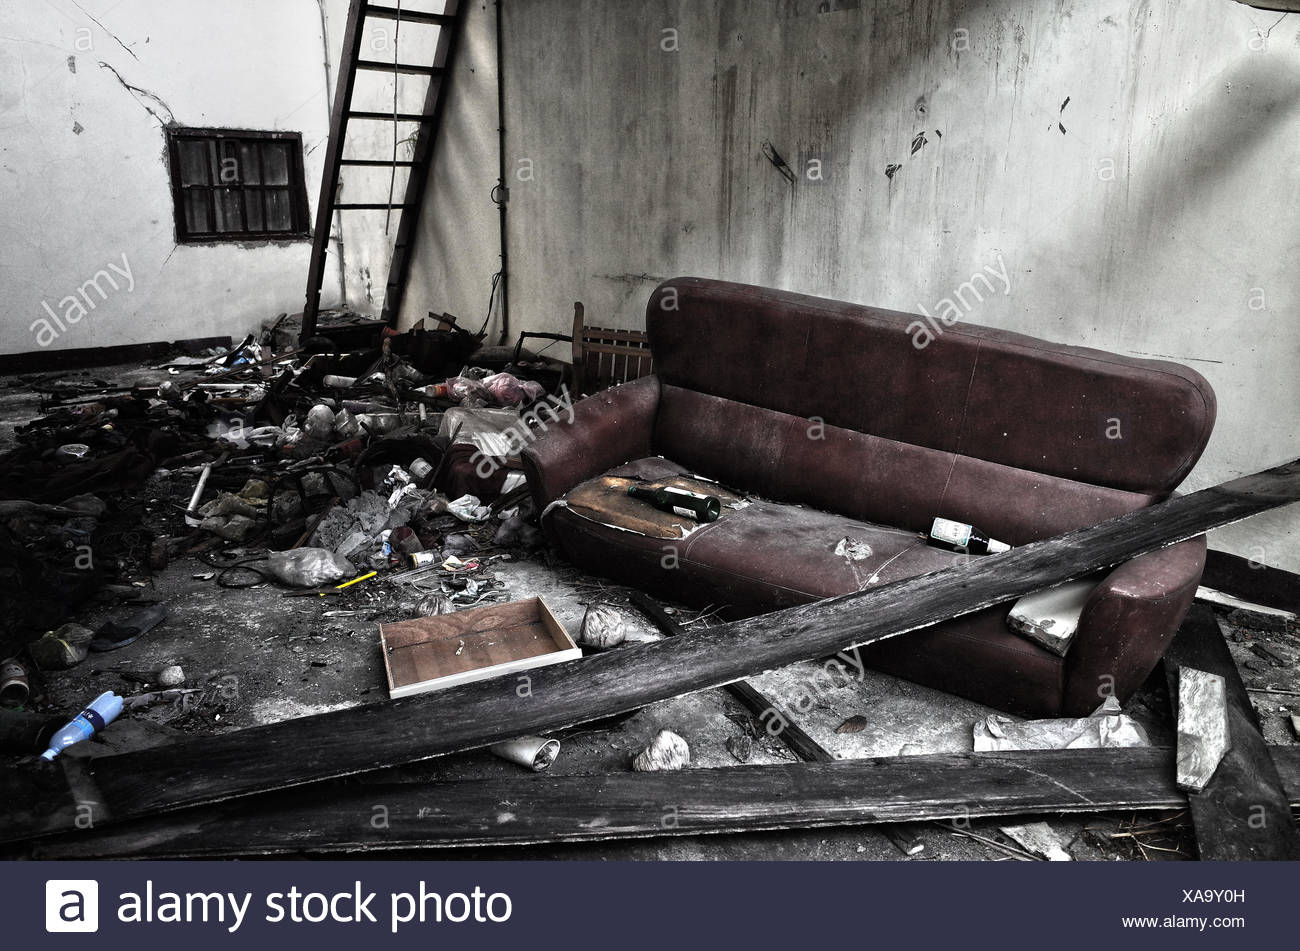 Messy Room In Abandoned House - Stock Image